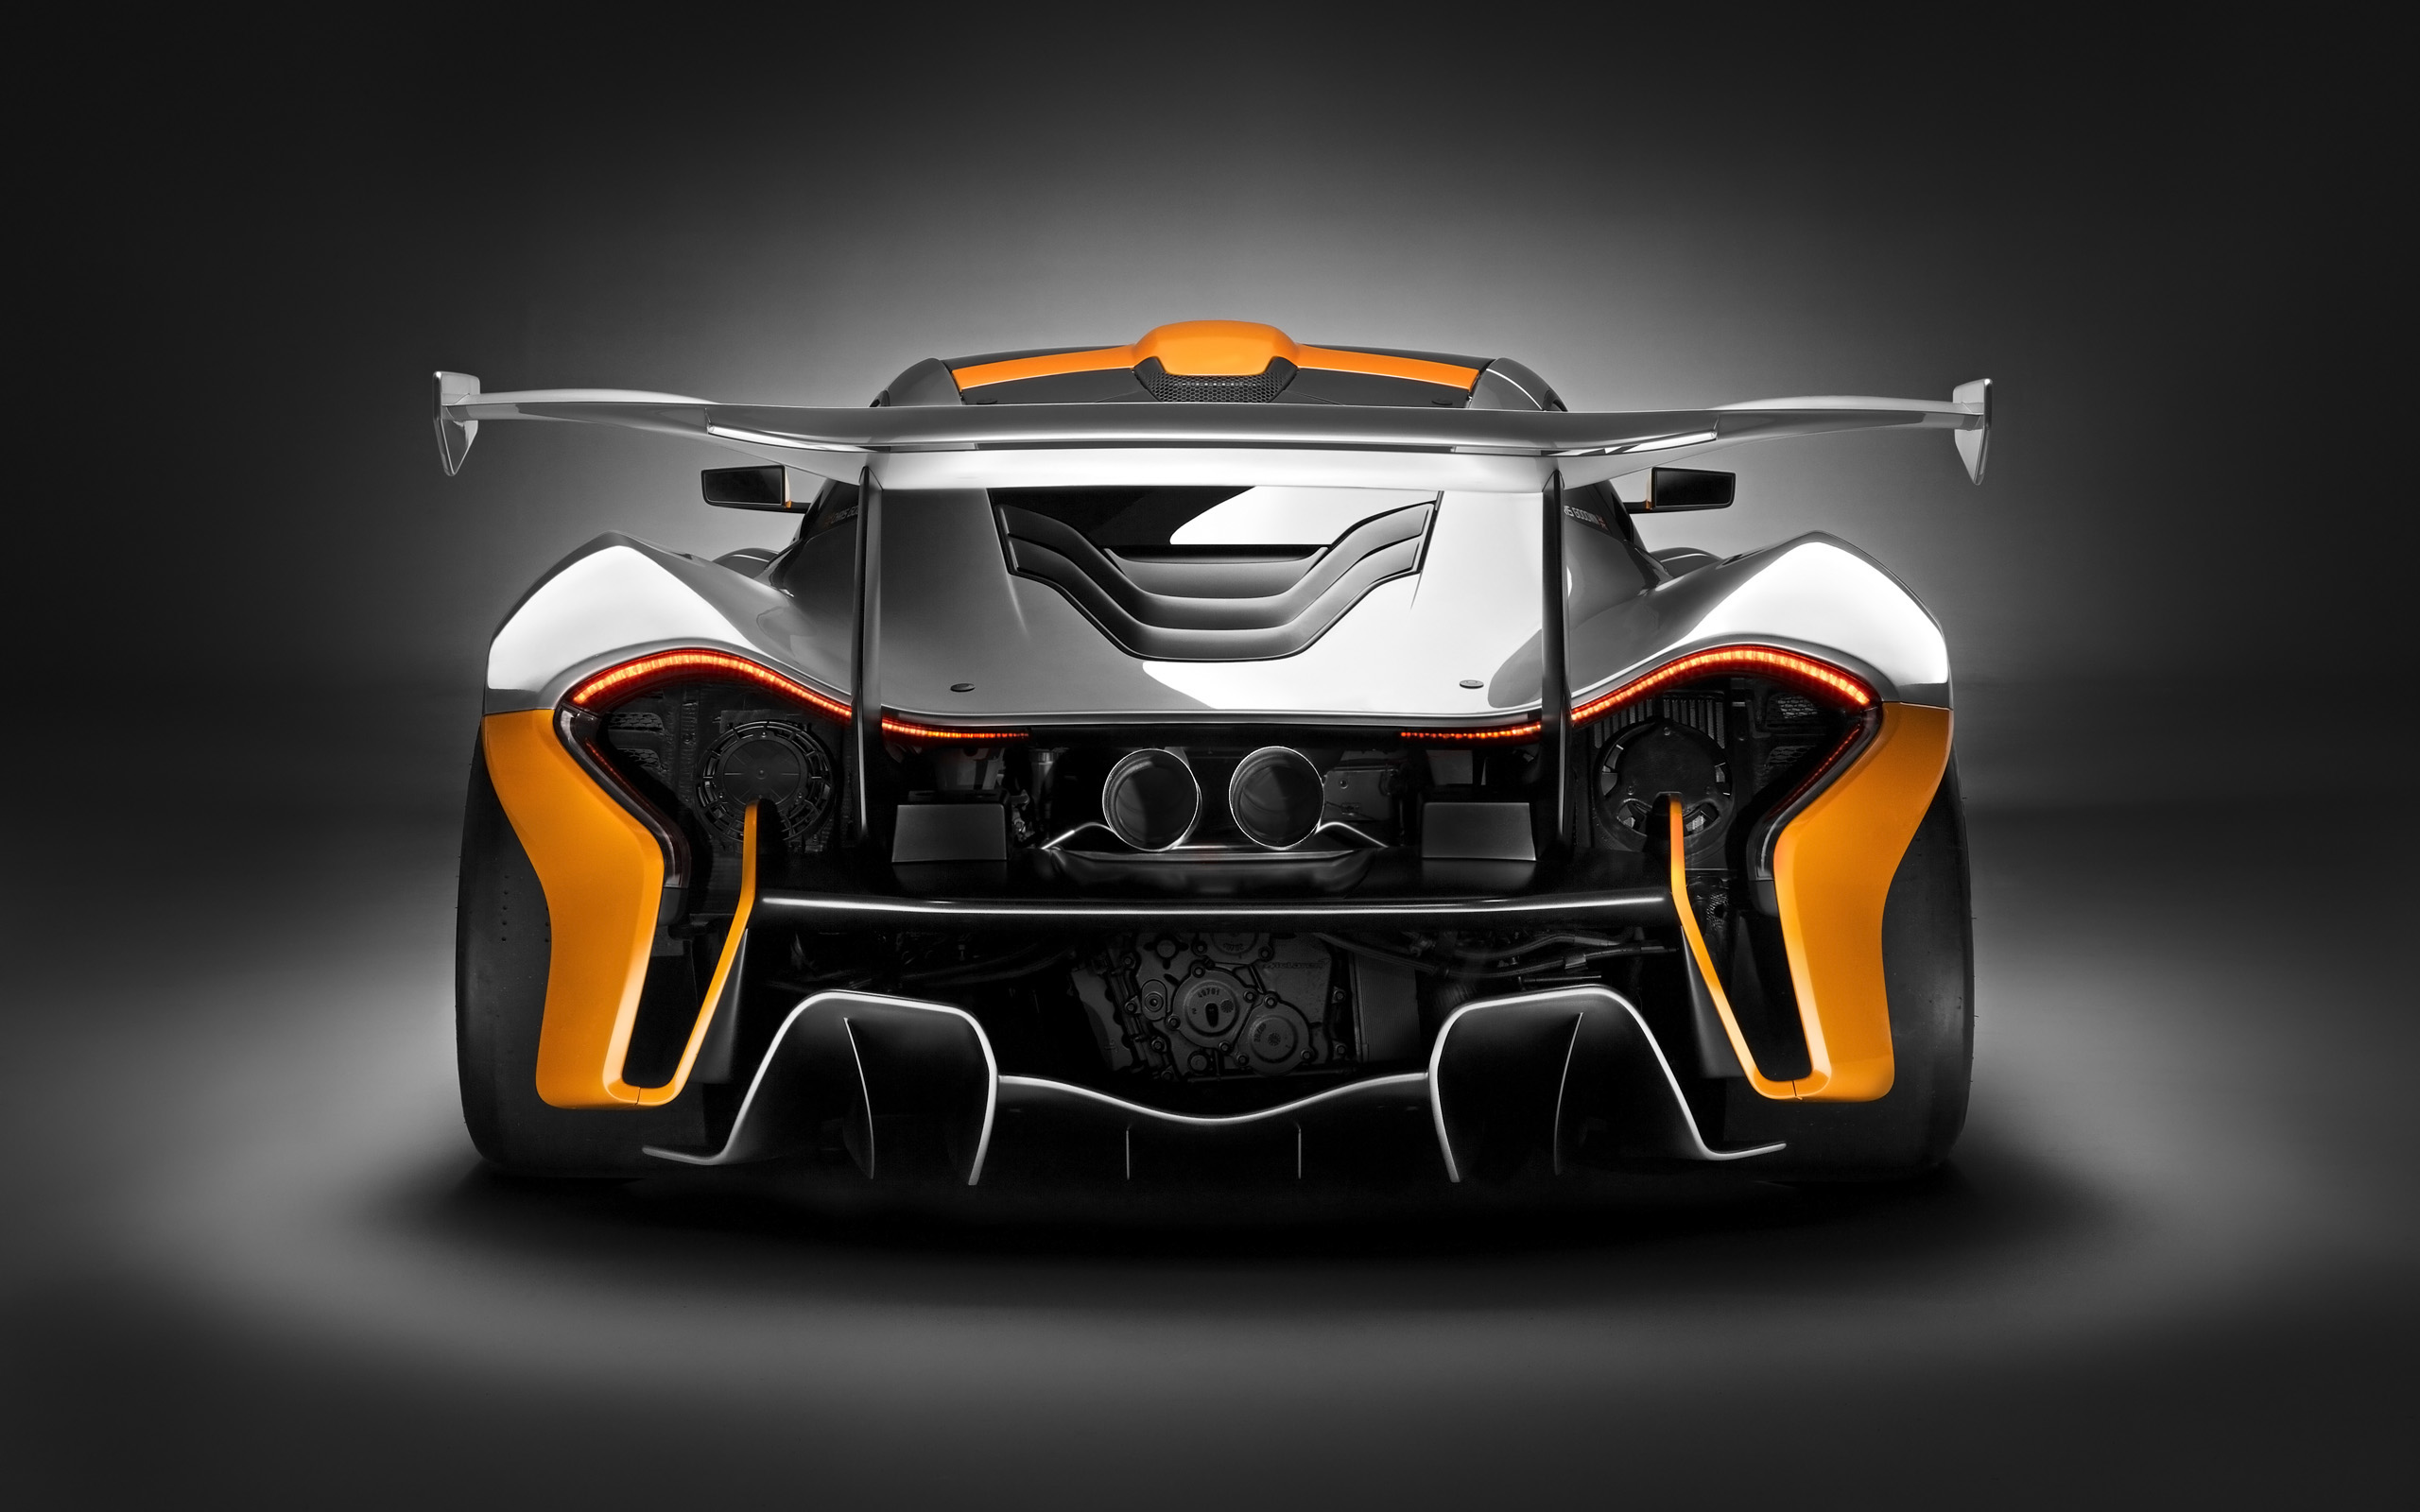 2014 mclaren p1 gtr design concept 4 wallpaper hd car wallpapers id 4760. Black Bedroom Furniture Sets. Home Design Ideas